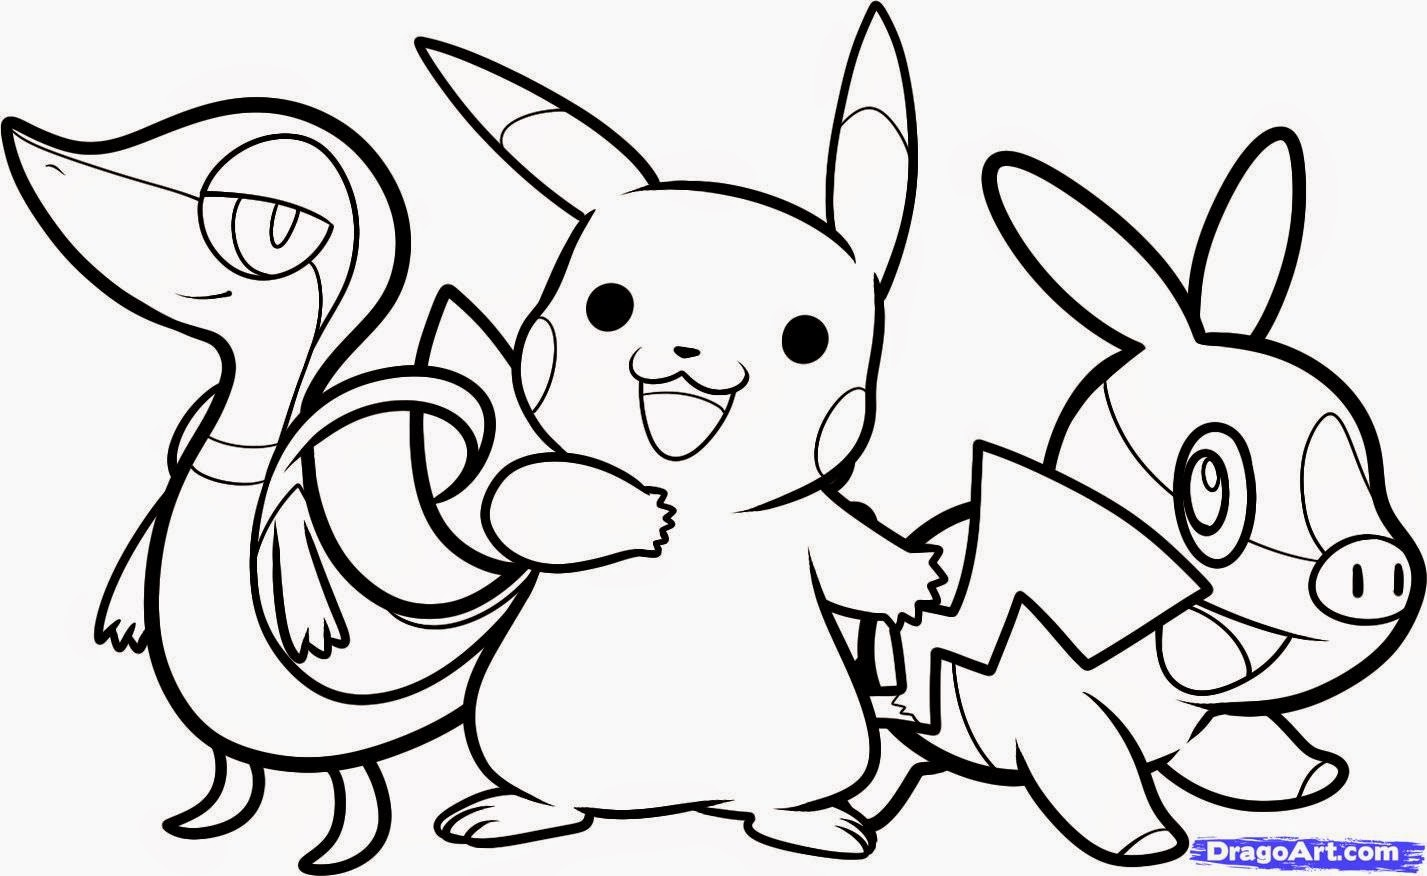 Coloriage imprimer pok mon liberate - Coloriage carte pokemon ...